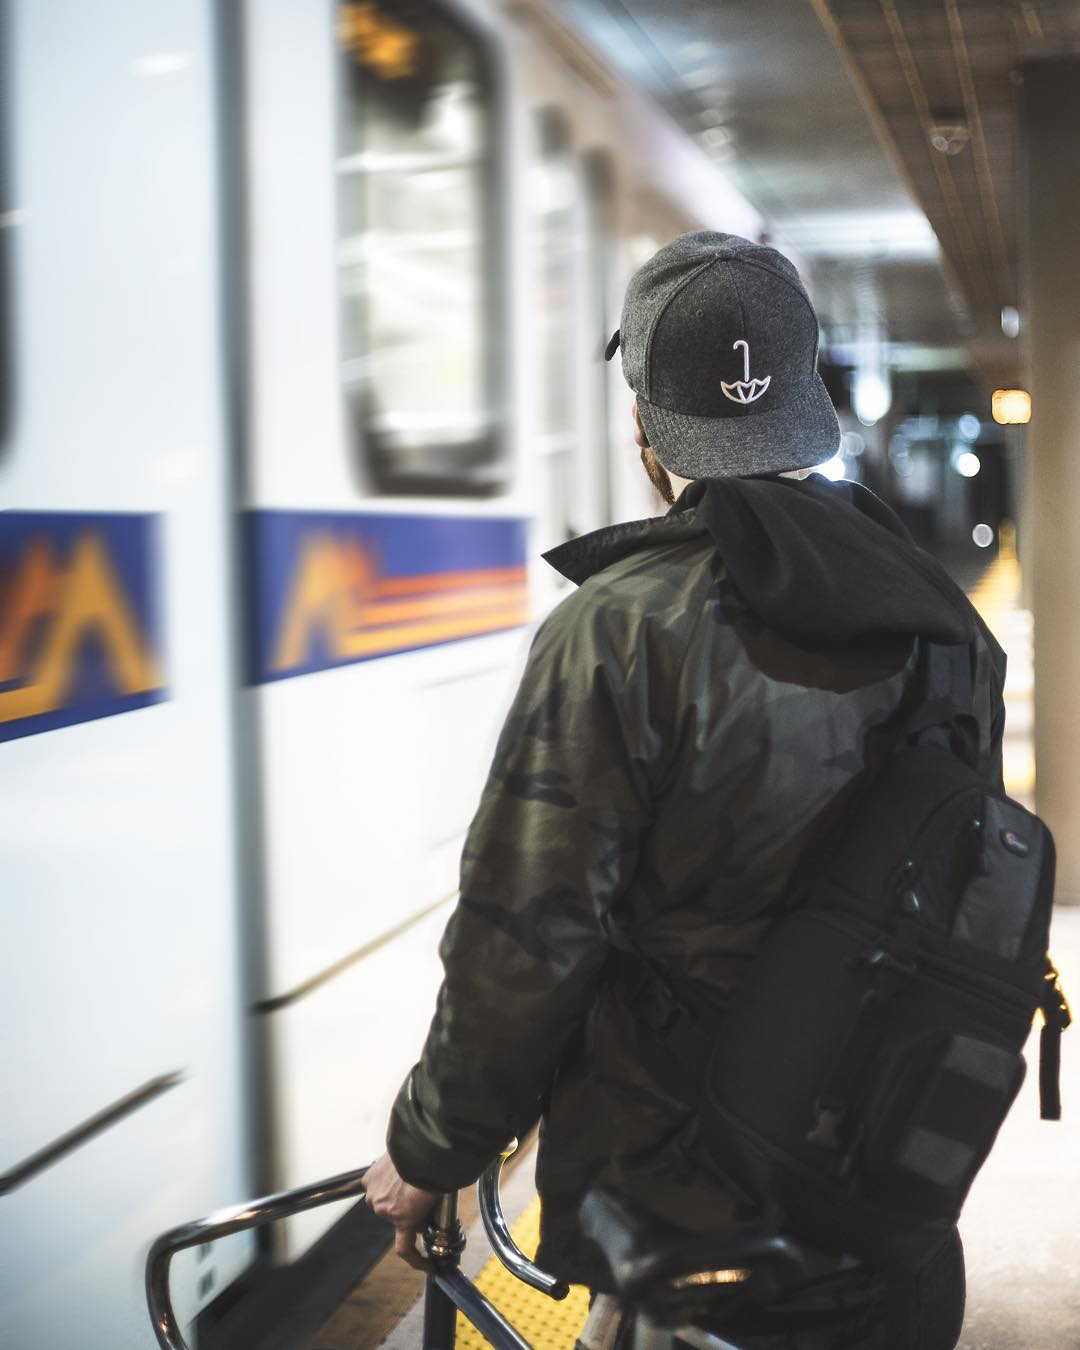 quicker commutes with green dream caps